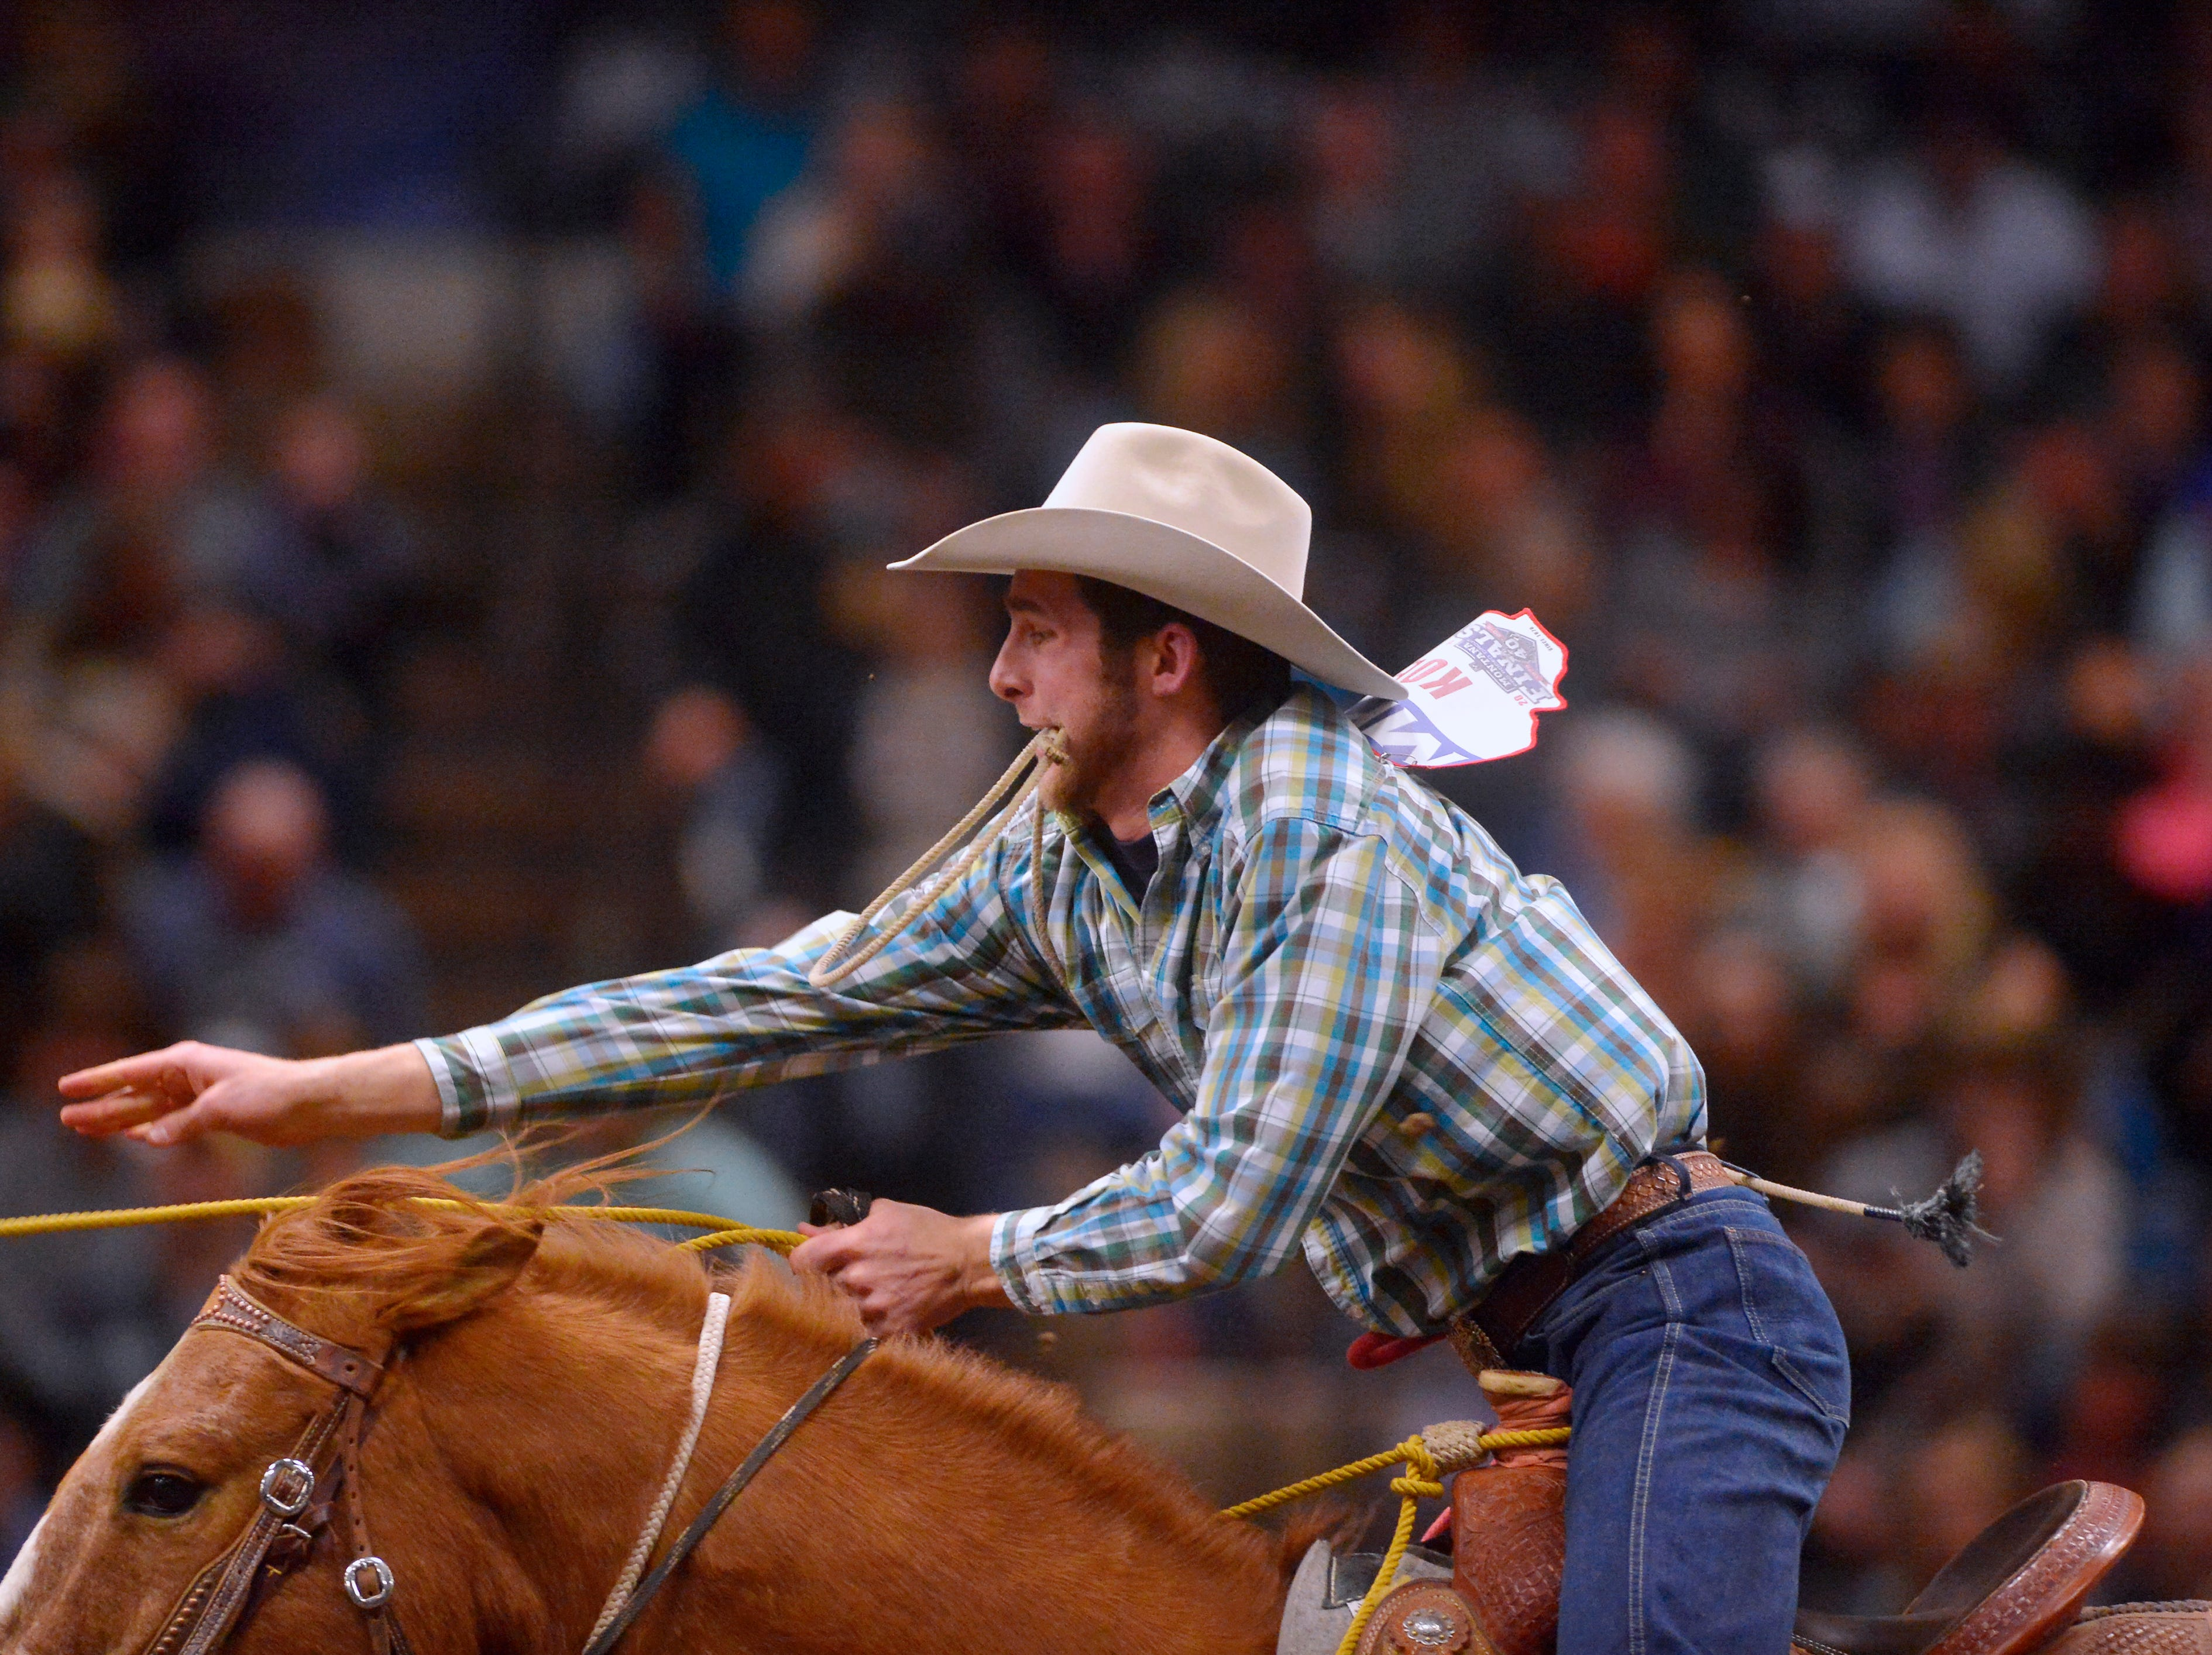 Al Koenig throws his loop in the tie-down roping event during the Montana Pro Rodeo Circuit Finals in the Pacific Steel and Recycling Four Seasons Arena, Friday, January 11, 2019.